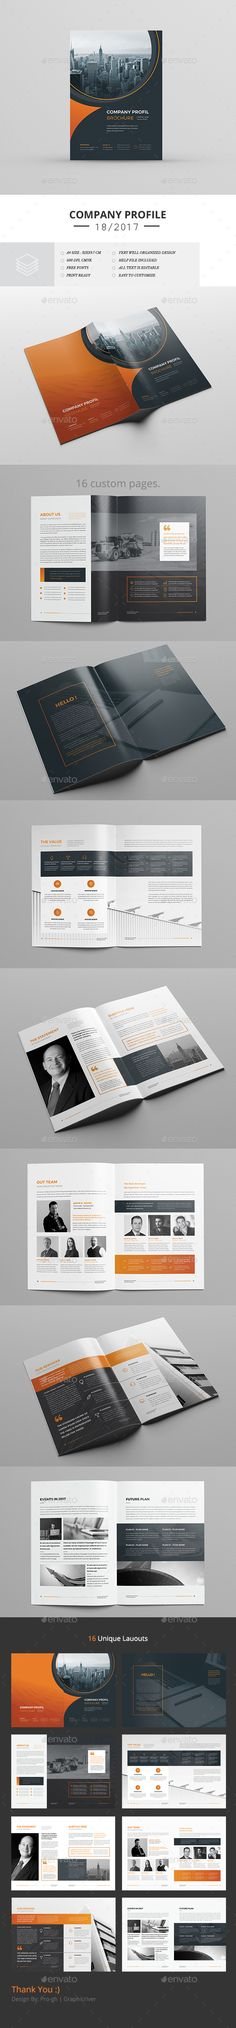 Corporate Brochure — InDesign INDD #infographics #a4 • Available here ➝ https://graphicriver.net/item/corporate-brochure/20610793?ref=pxcr